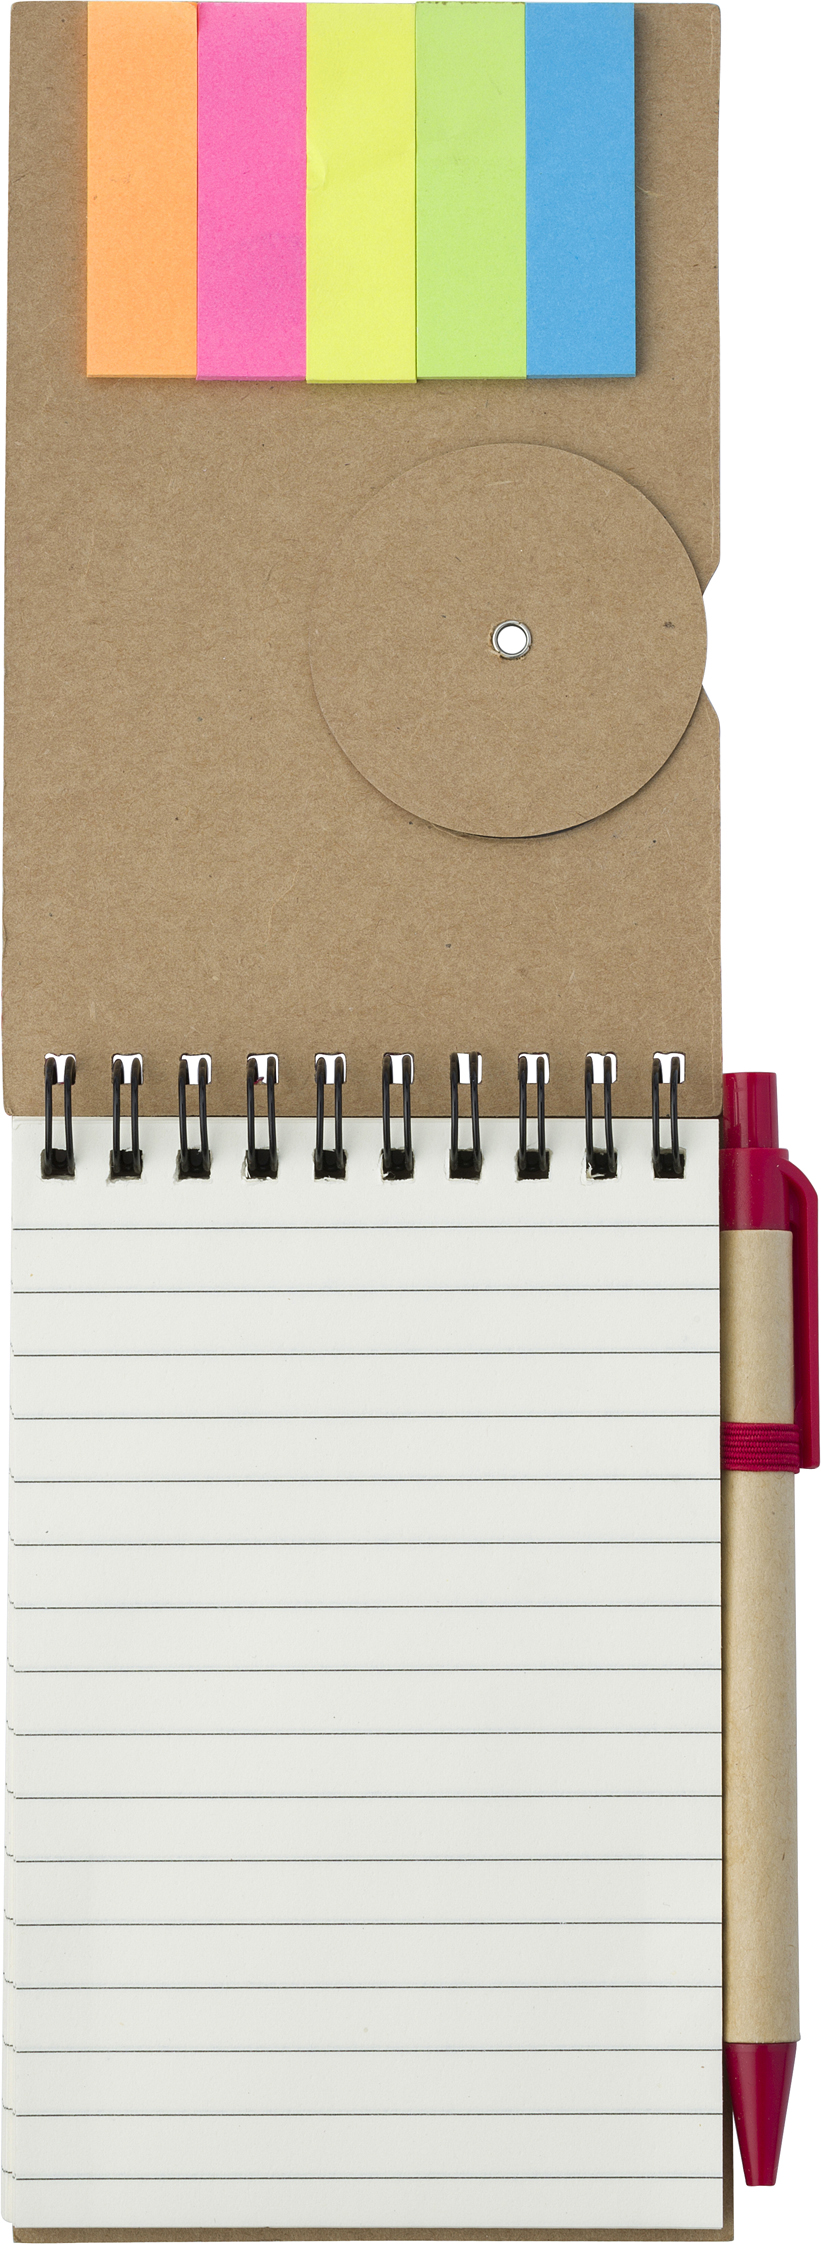 Promotional Wire bound notebook.